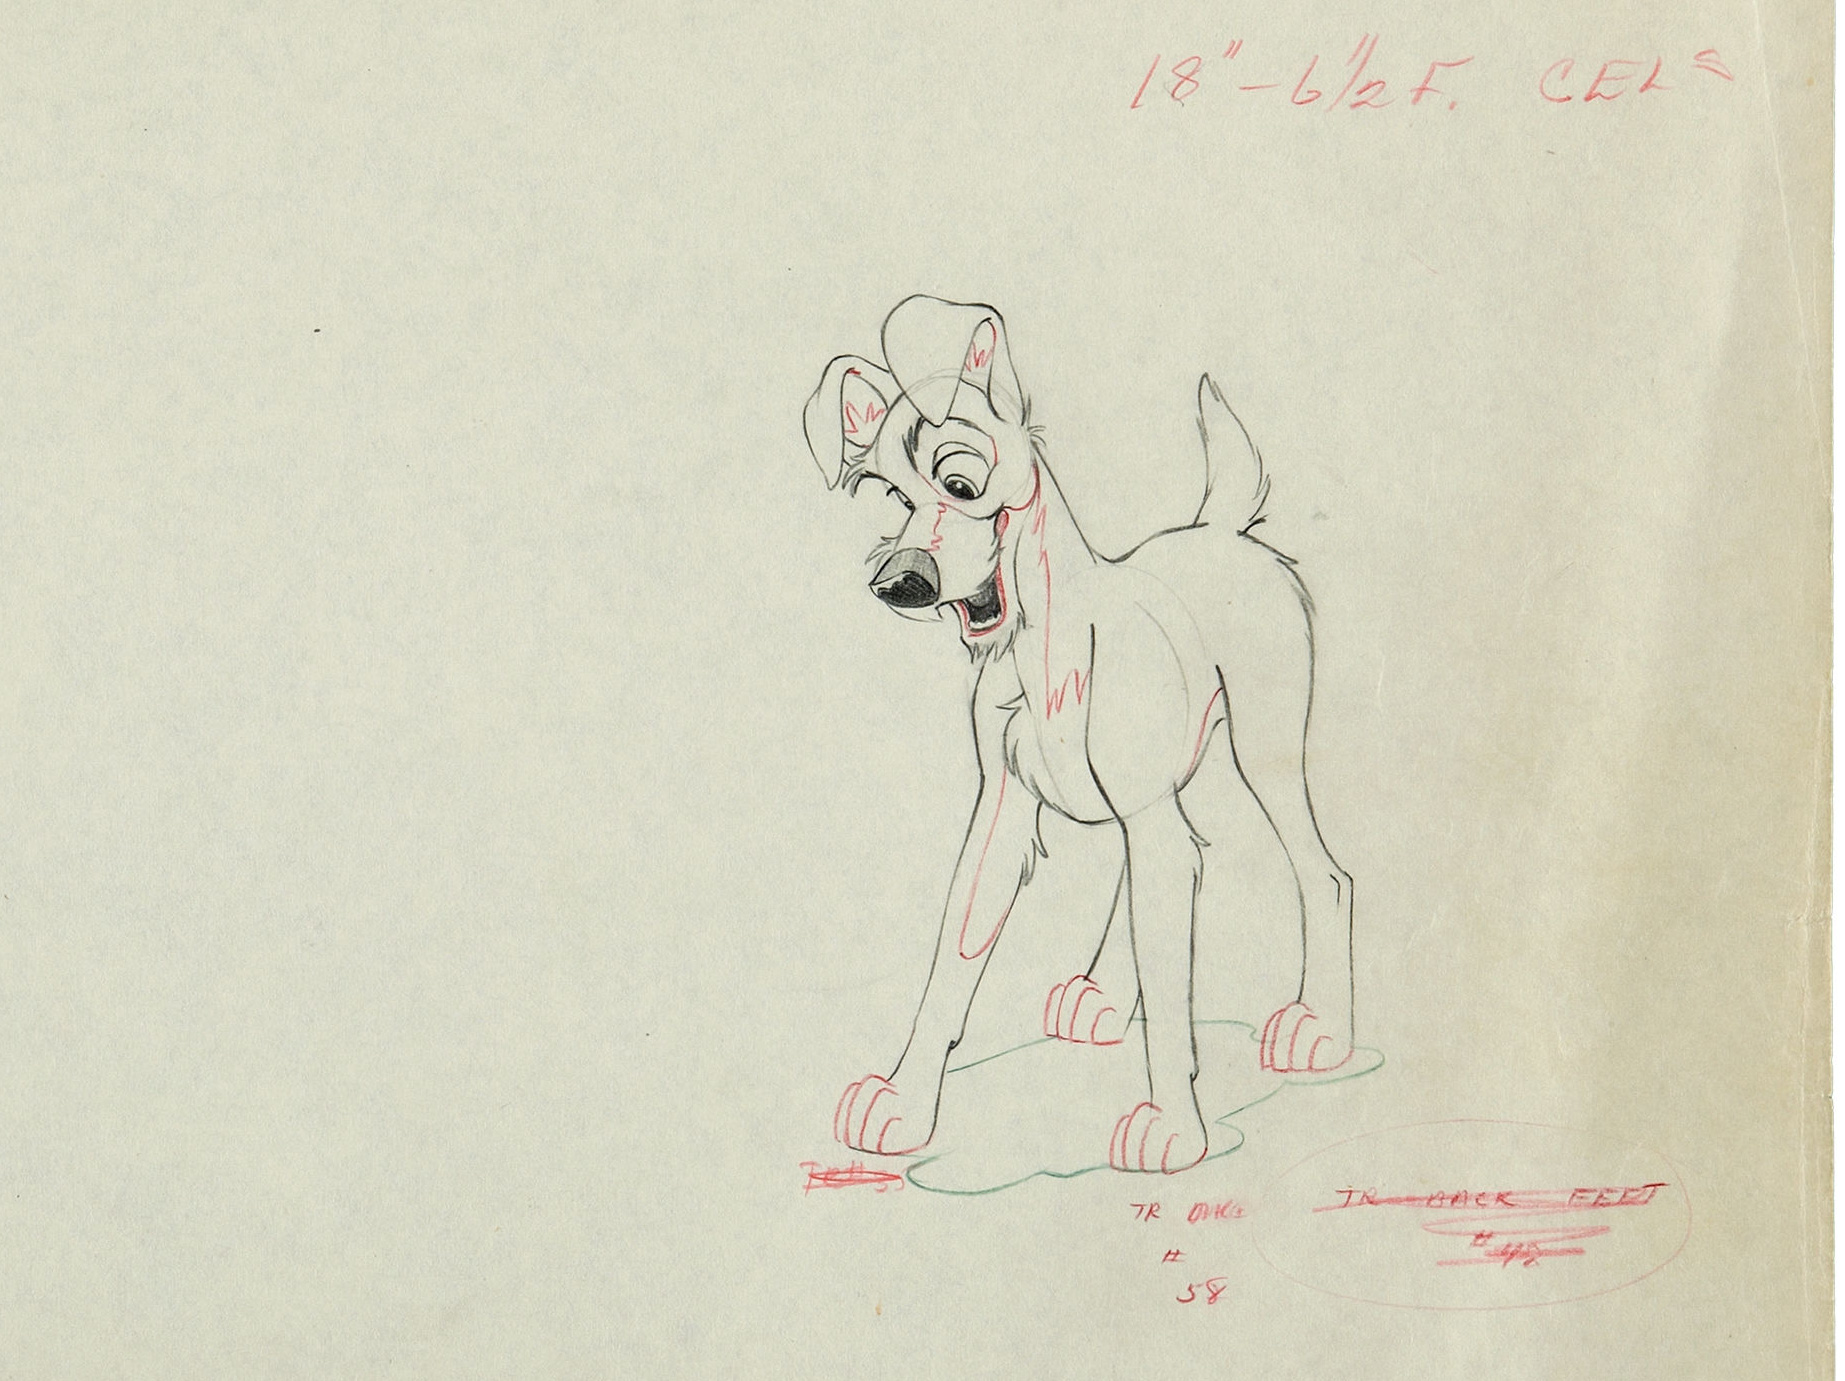 lady_and_the_tramp_disney_production_art_26.jpg